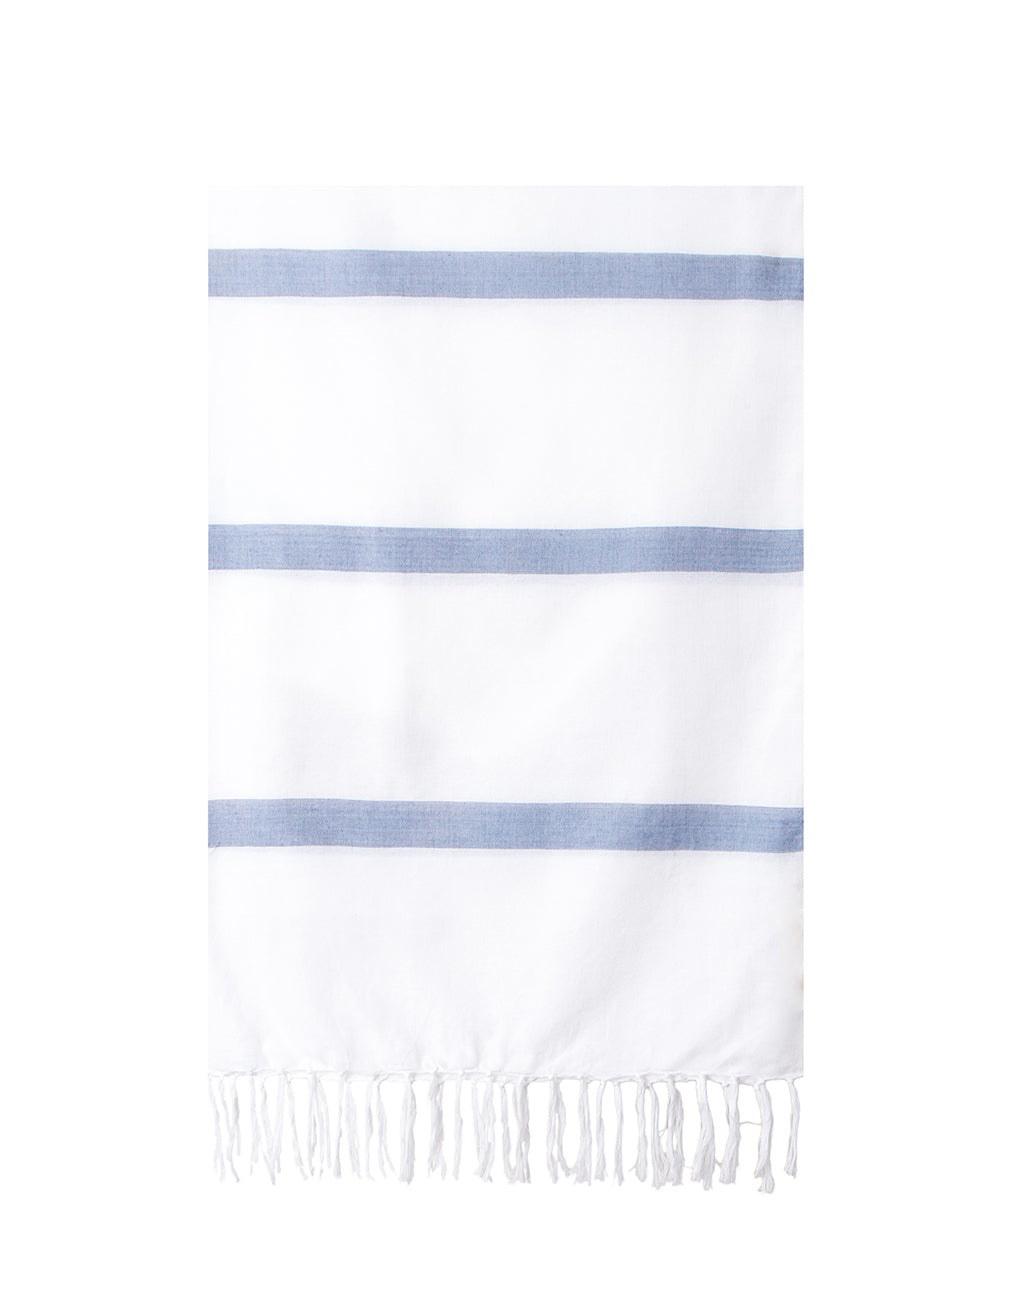 Lightweight Fringe Towel In Style No. 3 In Midnight Blue | The Little Market